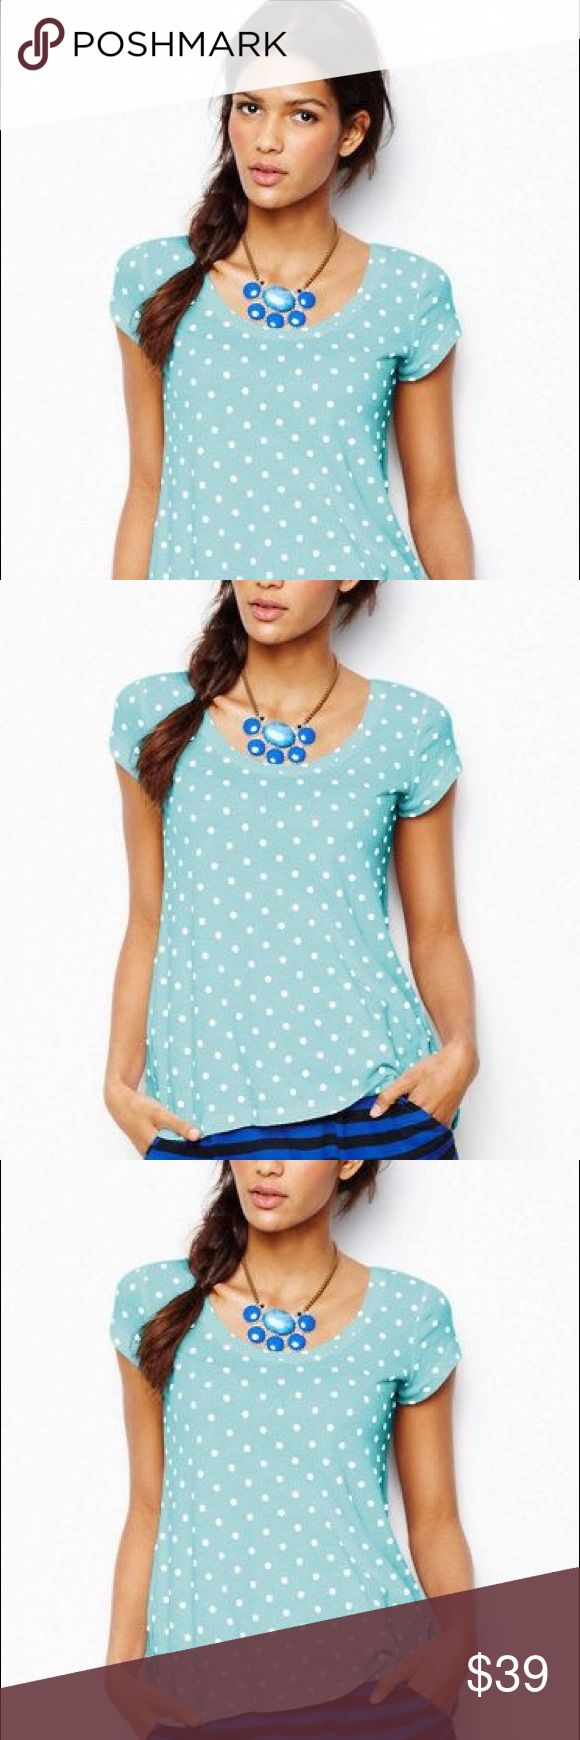 🌱SOFT Cotton Cap Sleeve Tee T-Shirt Polka Dot Top Brand new! Factory Sealed! Size PP. Very Soft Cotton! Also available in White-Black GARNET HILL Tops Tees - Short Sleeve